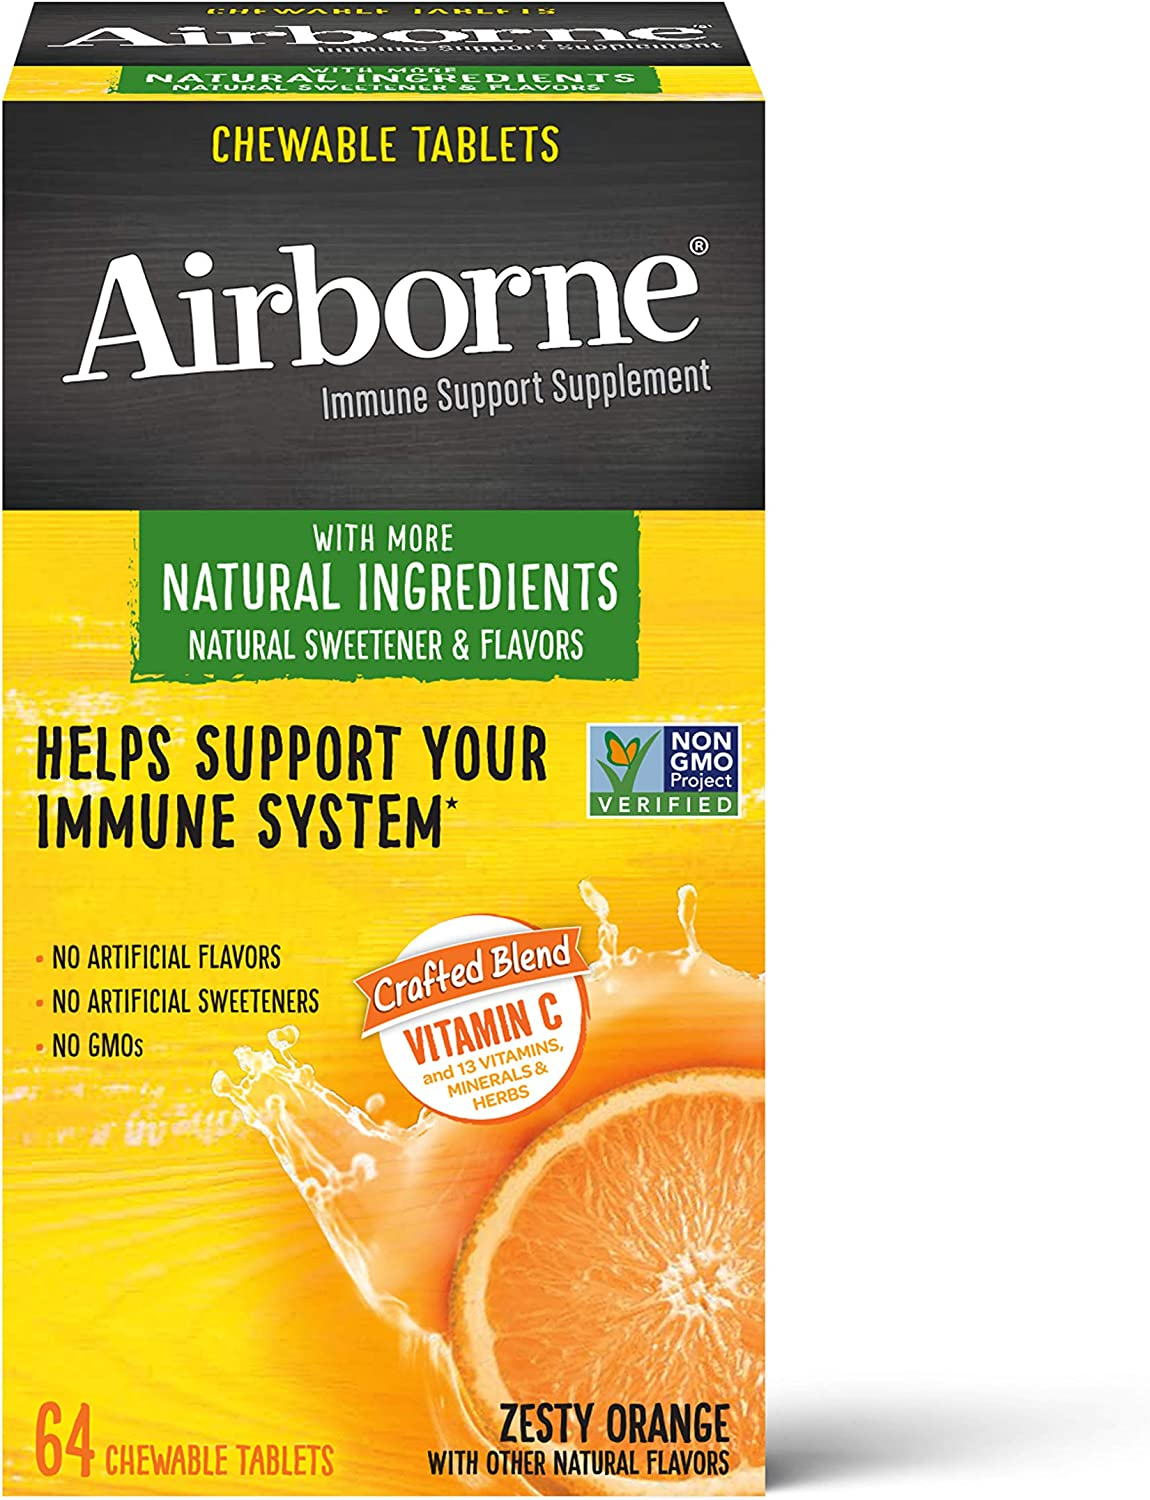 Vitamin C 1000mg (per serving) - Airborne Zesty Orange Chewable Tablets (64 count in a box), Gluten-Free Immune Support Supplement and High in Antioxidants